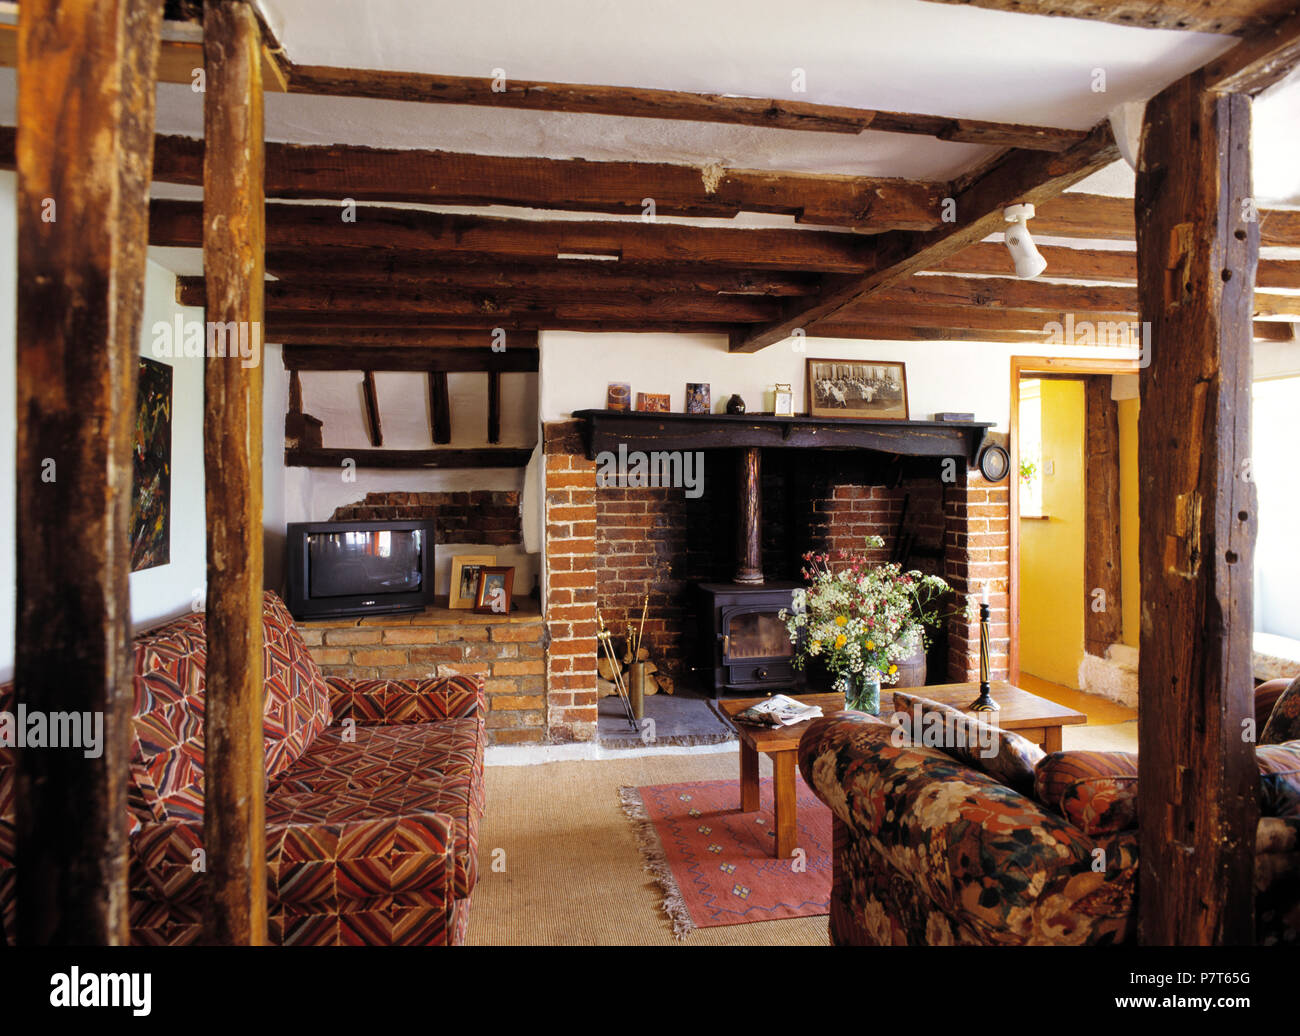 Patterned sofas and rustic wooden beams in eighties style country ...